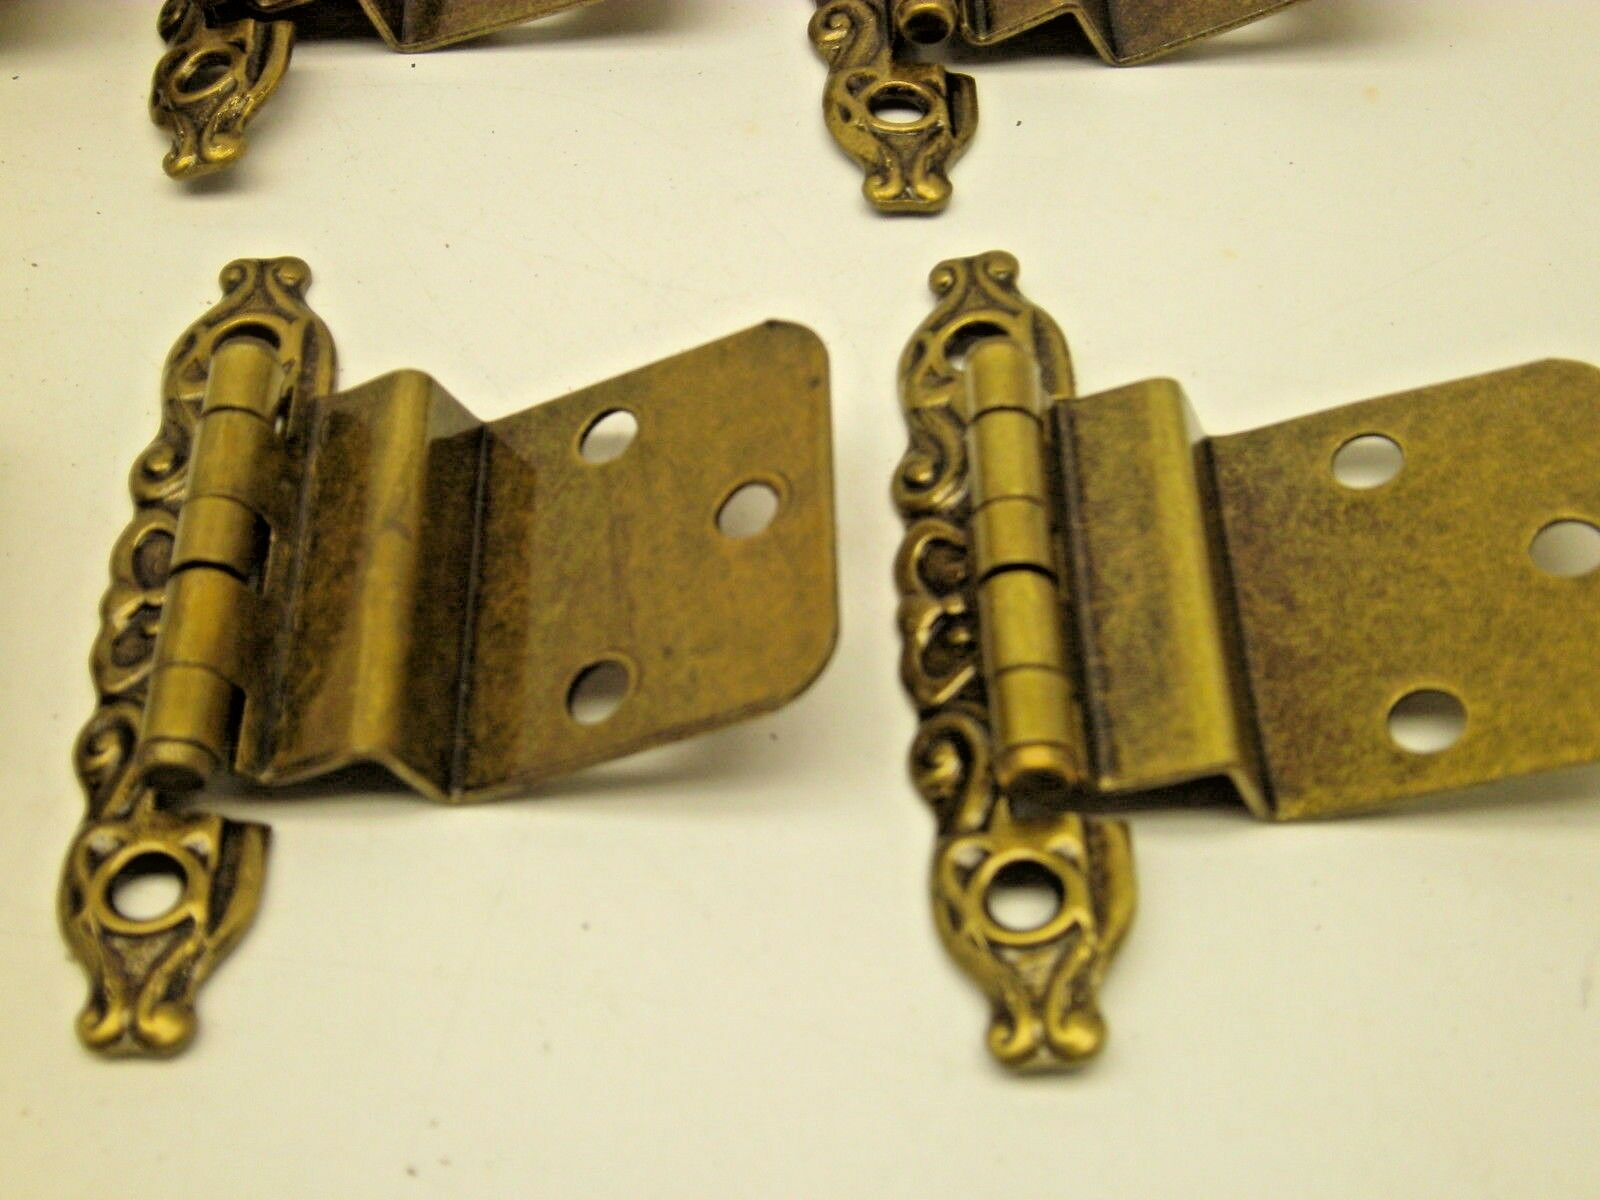 NOS VINTAGE LOT OF 10 PAIR  CABINET HINGES GOLD ANTIQUE  BRASS finish X